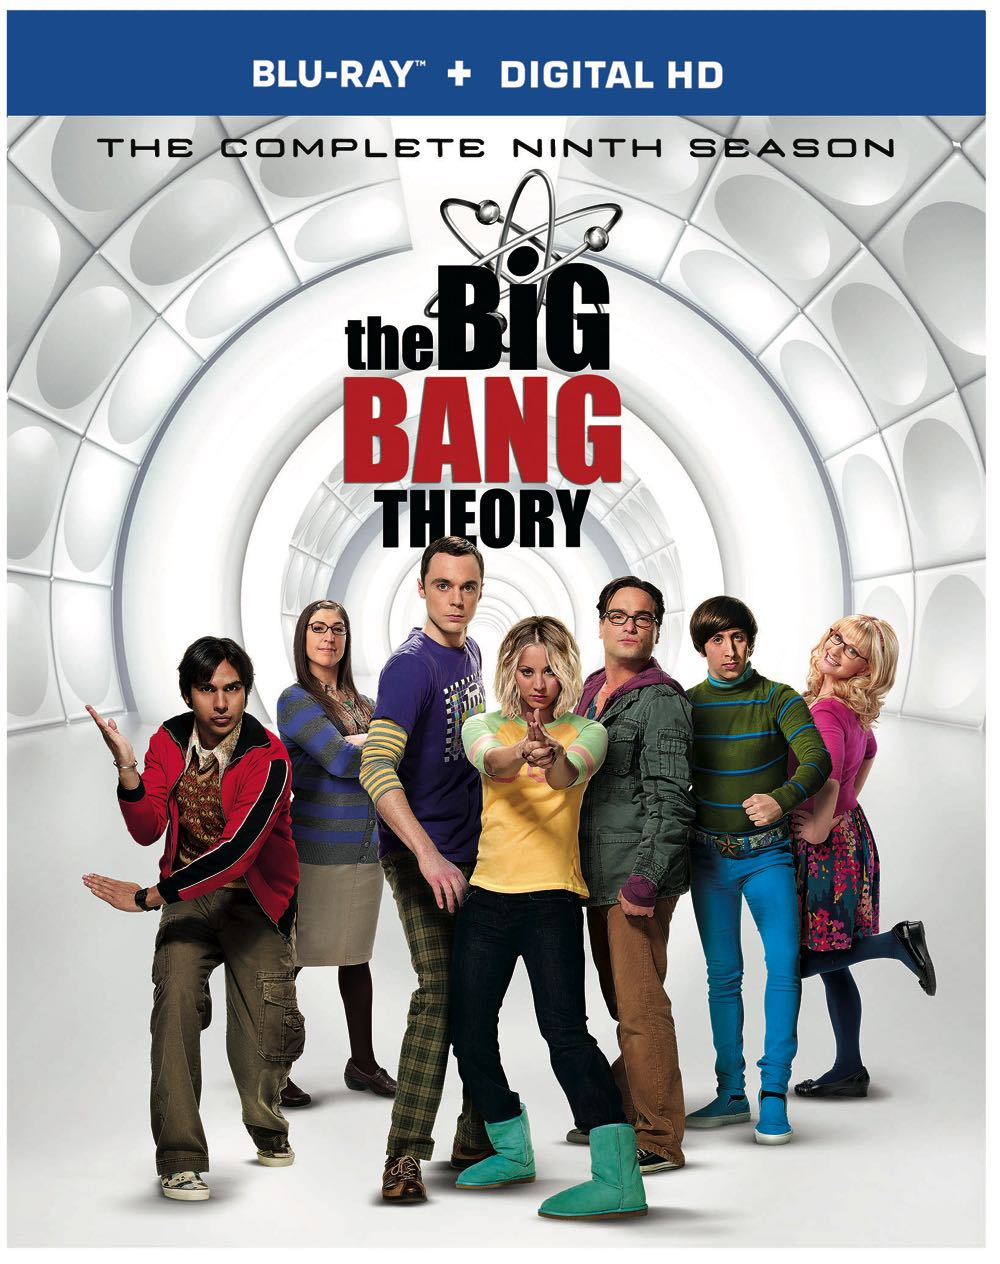 The-Big-Bang-Theory-Season-9-Bluray.jpg